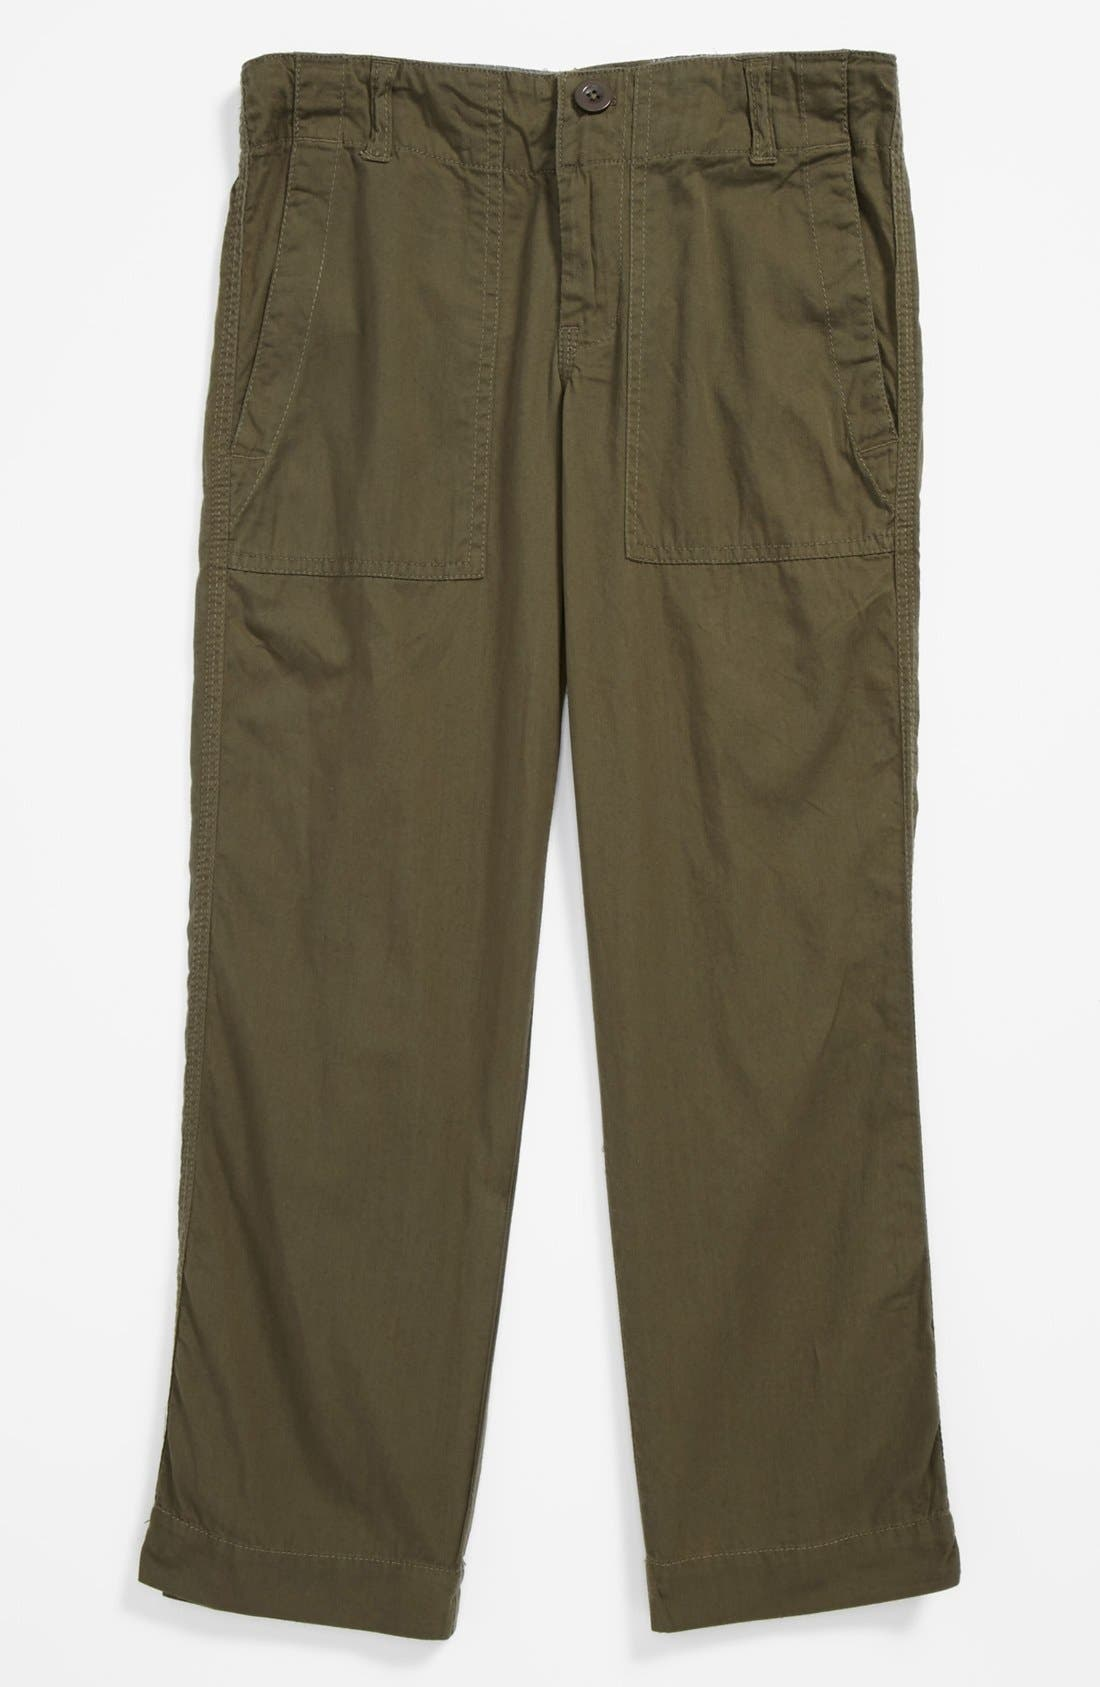 Alternate Image 1 Selected - Peek 'Tilden' Utility Pants (Big Boys)